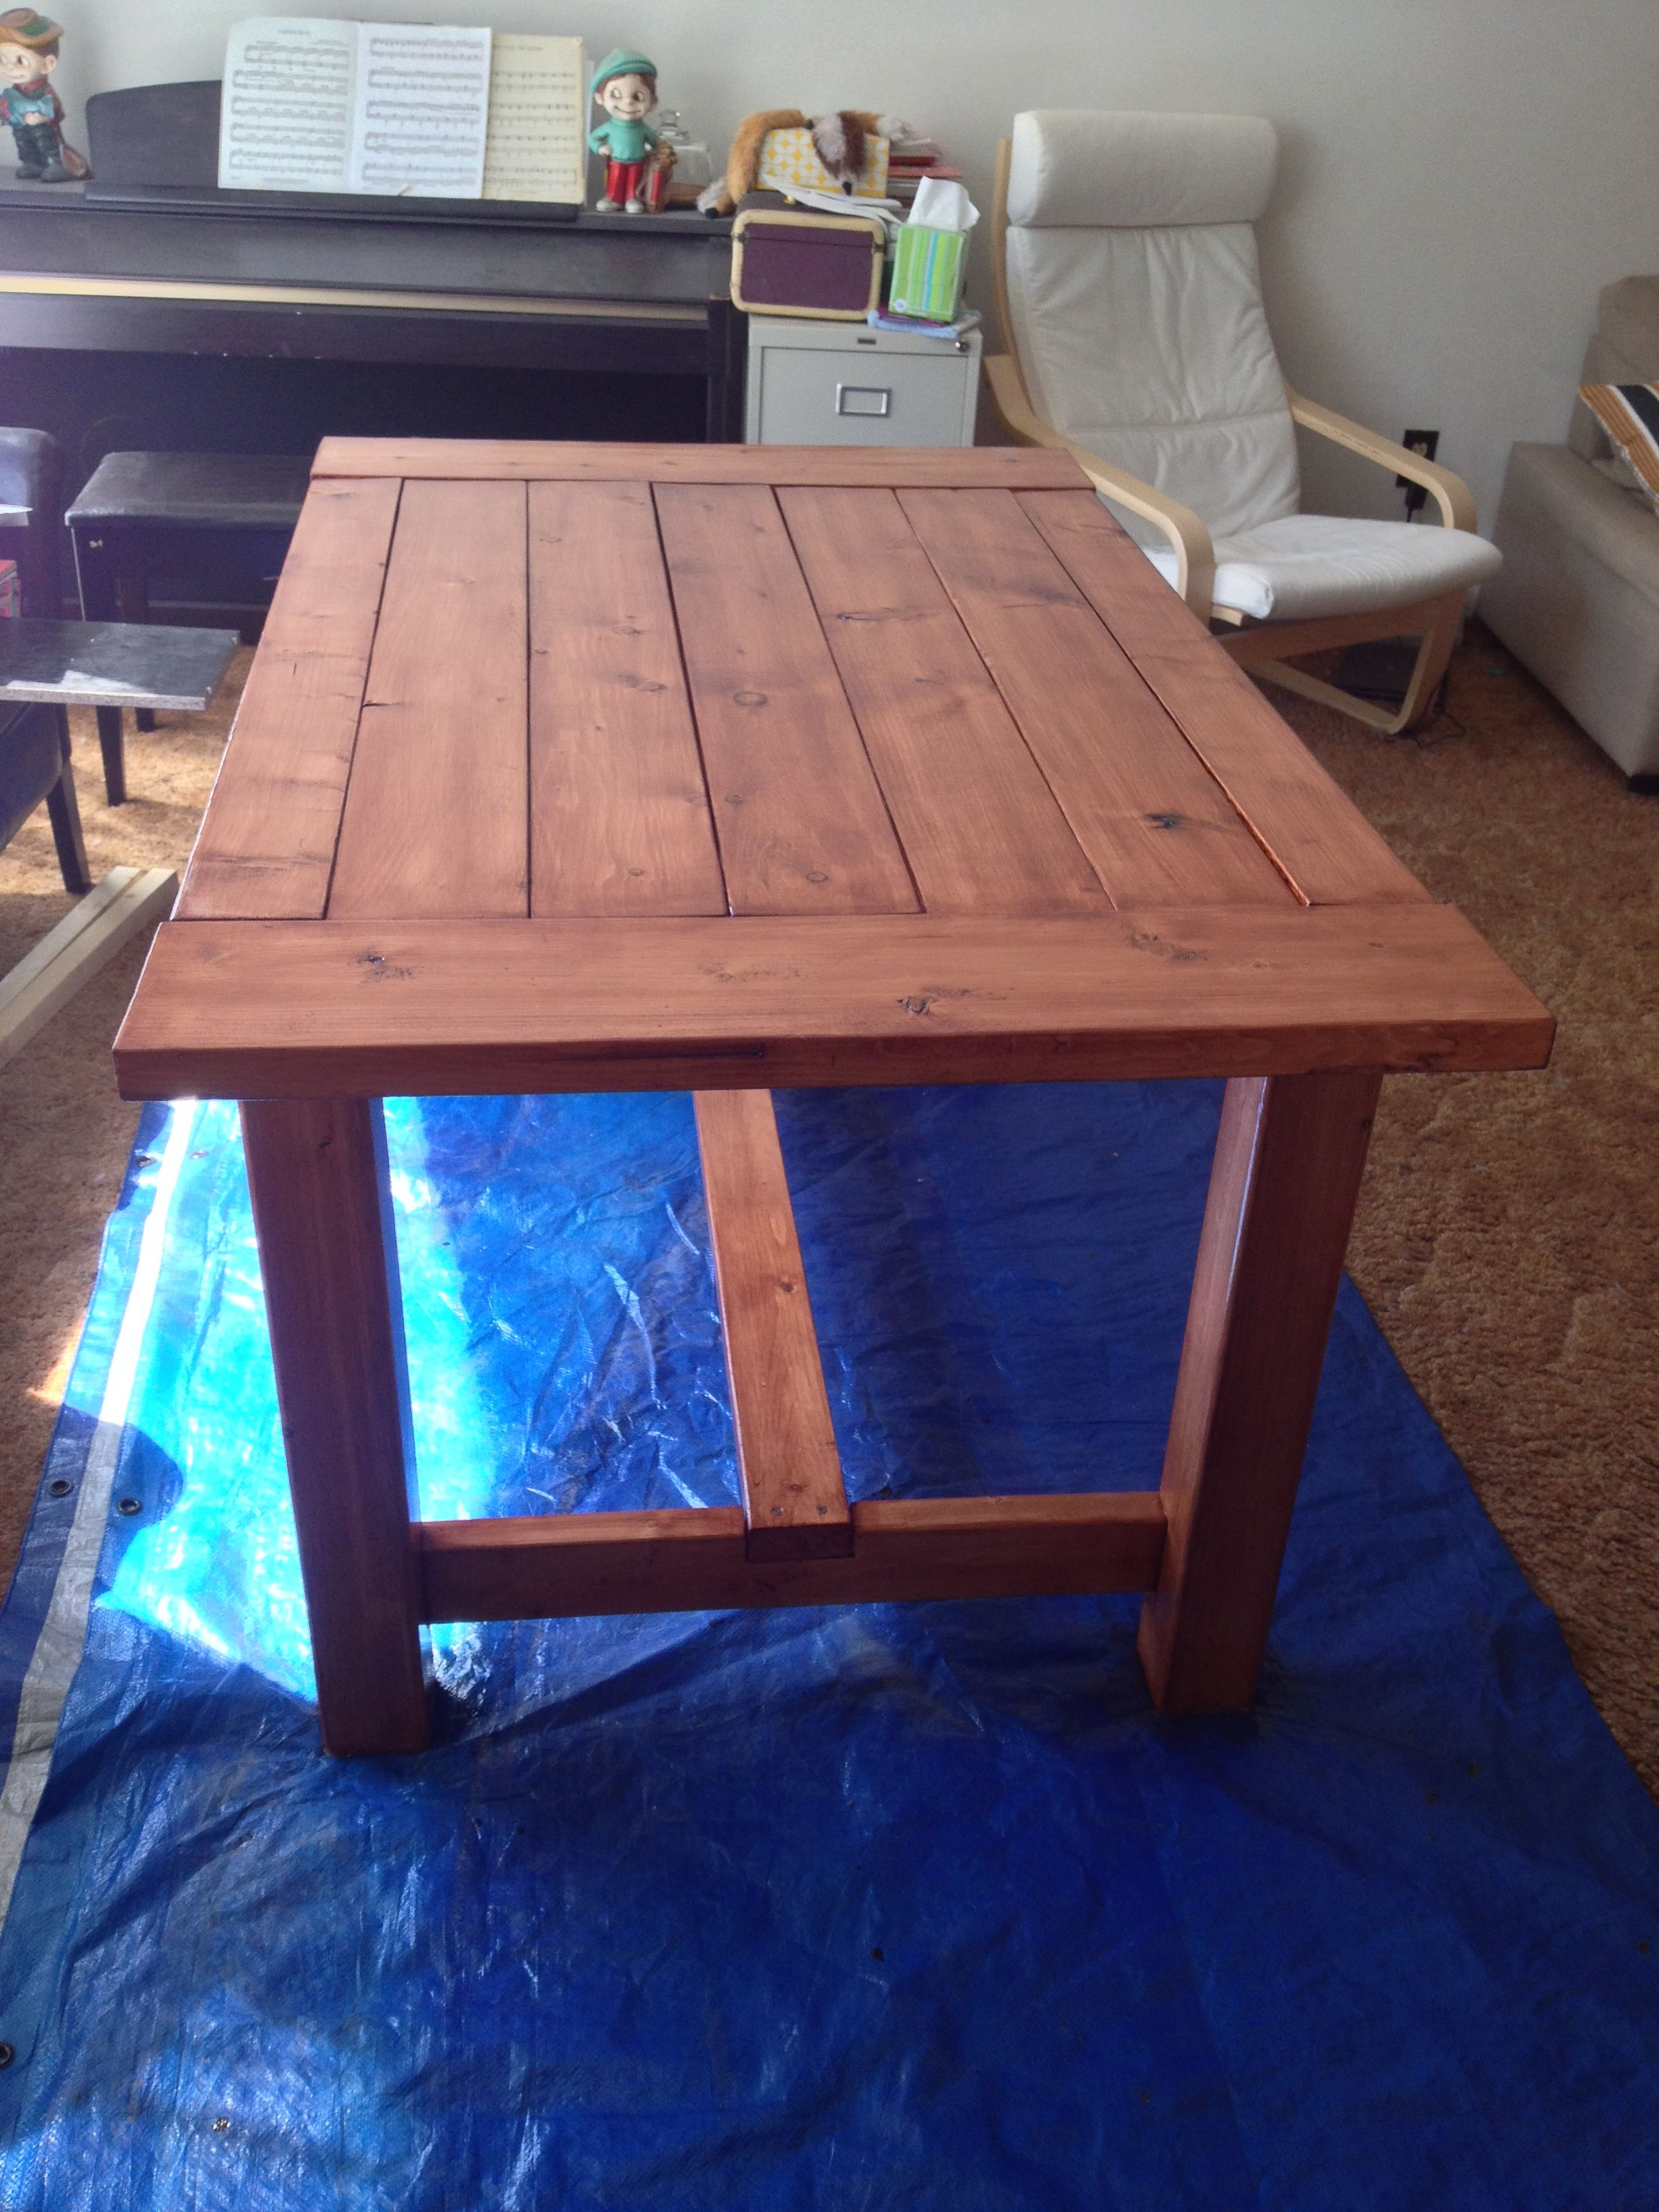 2 of 3 the table is built and stained